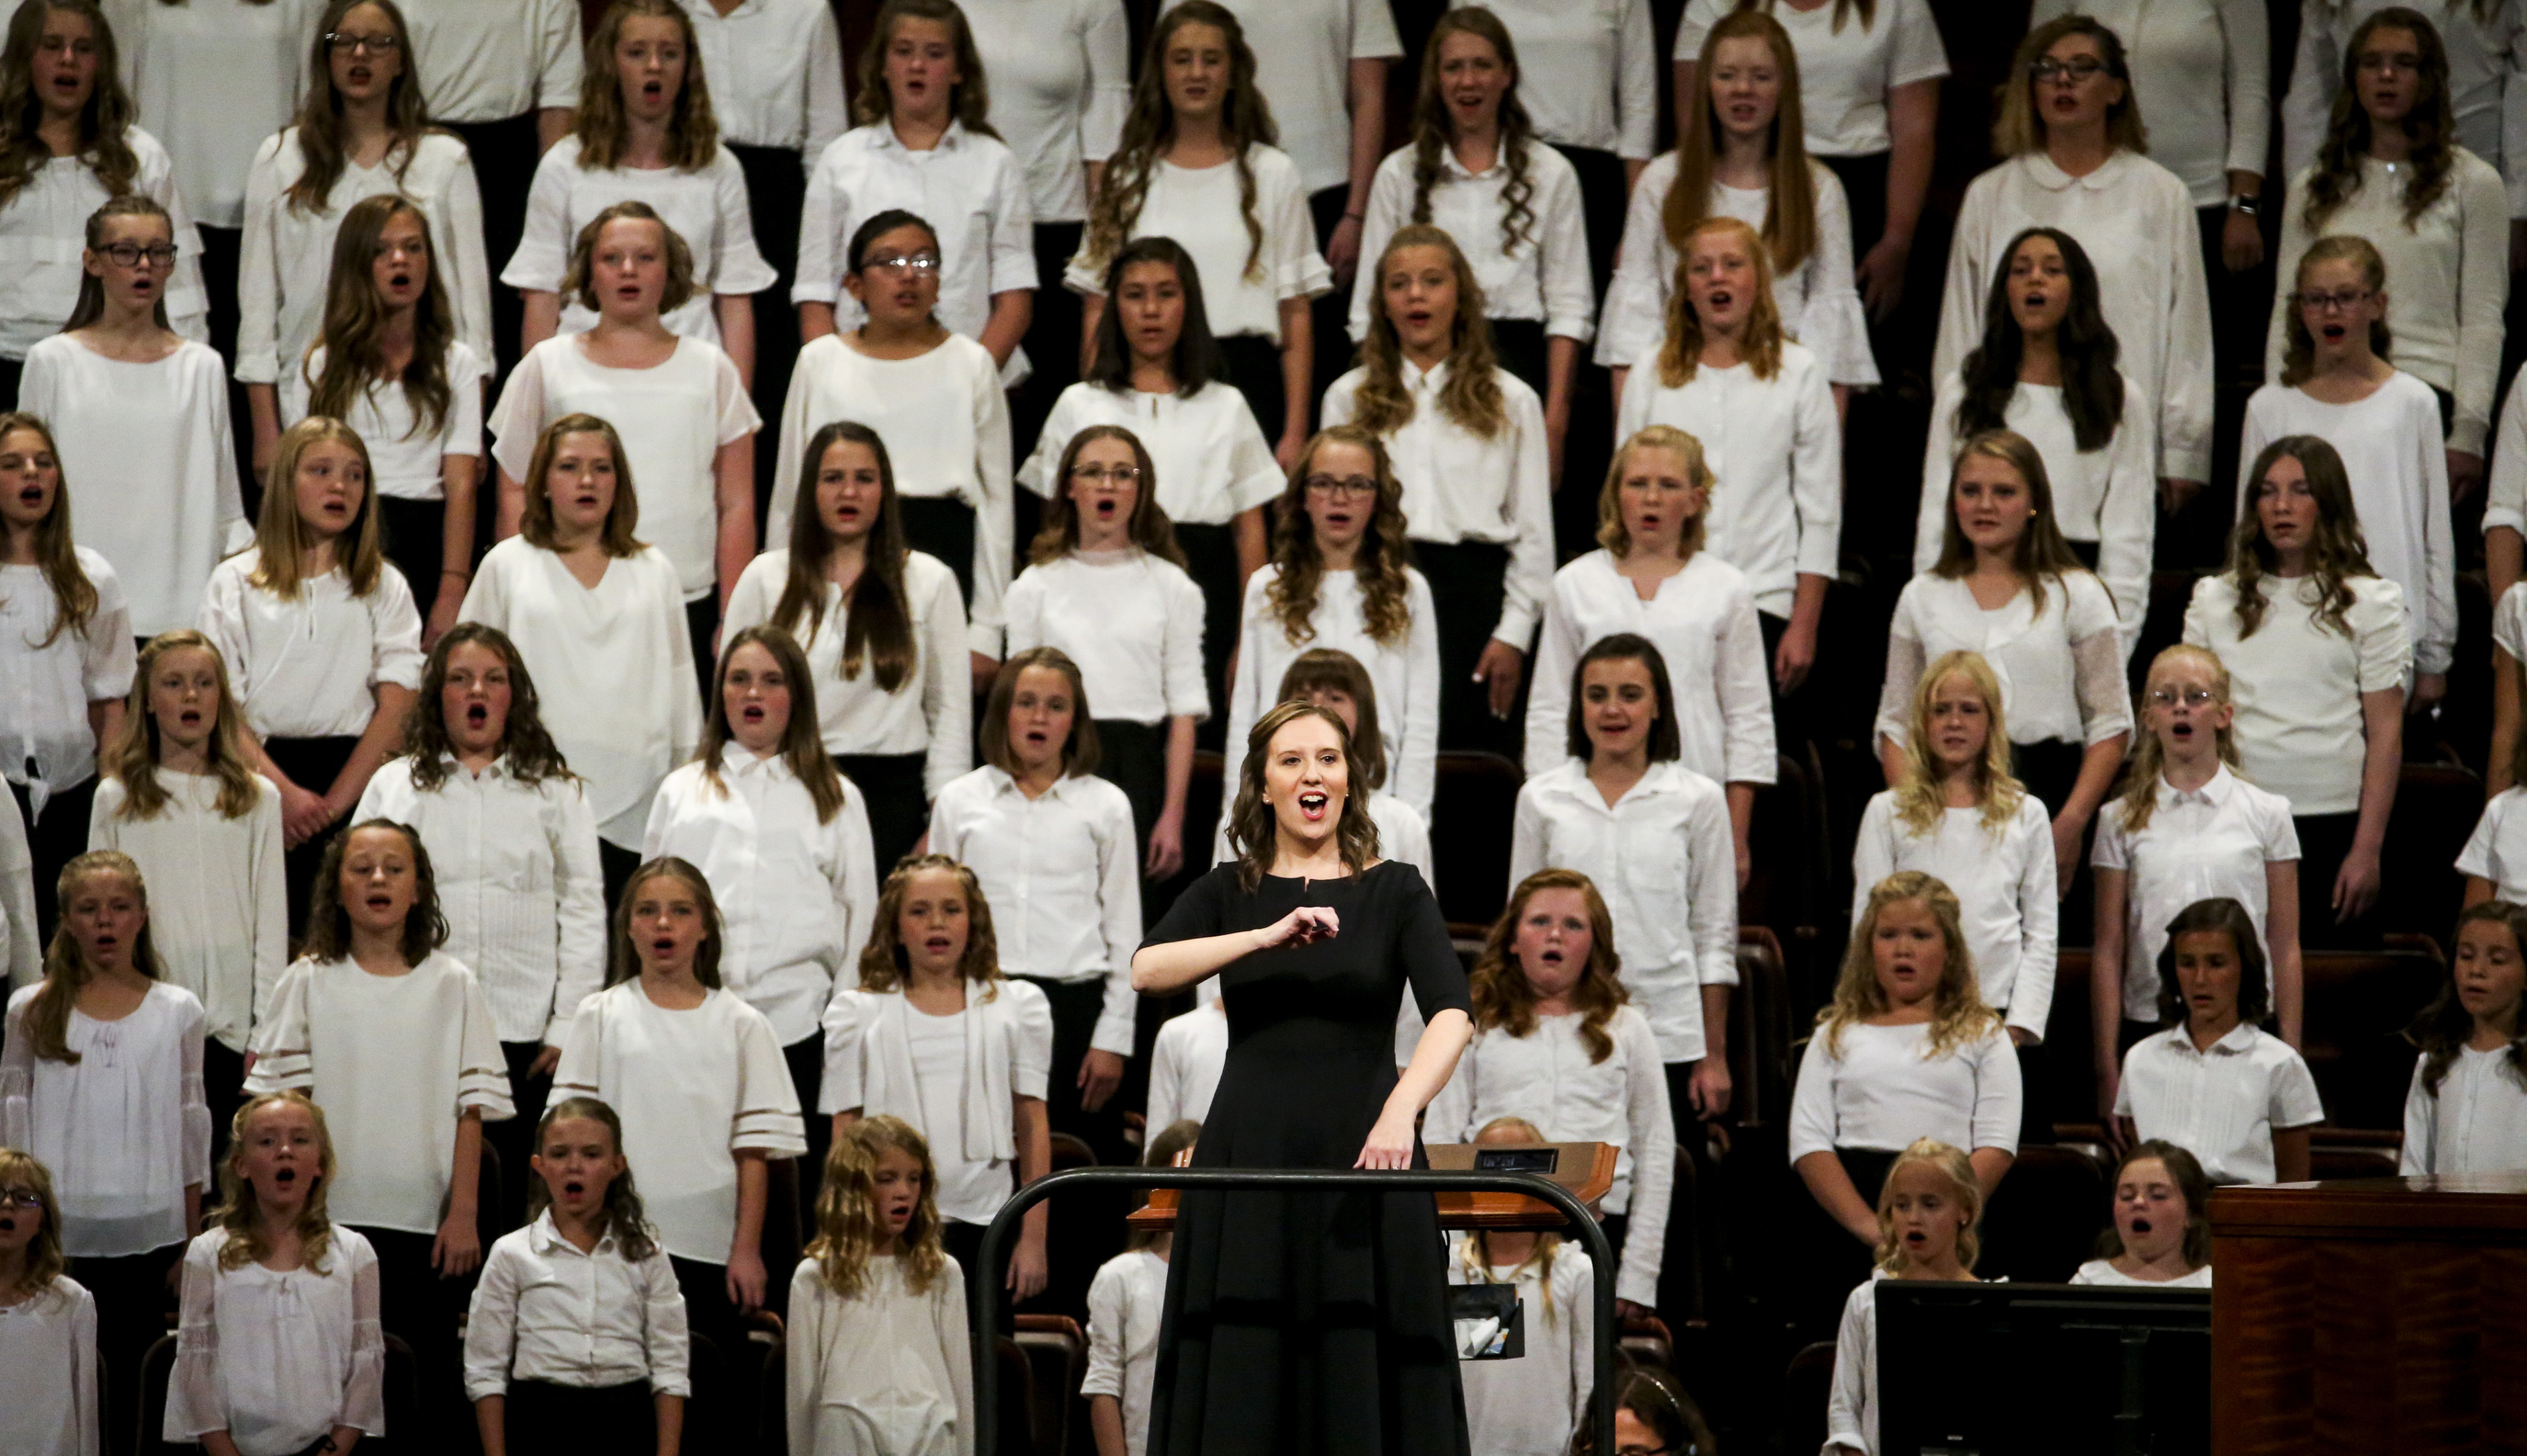 Kasey Bradbury, choir director, leads the audience in a hymn while the choir of Primary girls and young women from stakes in West Jordan sings behind her during the women's session of the 189th Semiannual General Conference of The Church of Jesus Christ of Latter-day Saints at the Conference Center in Salt Lake City on Saturday, Oct. 5, 2019.